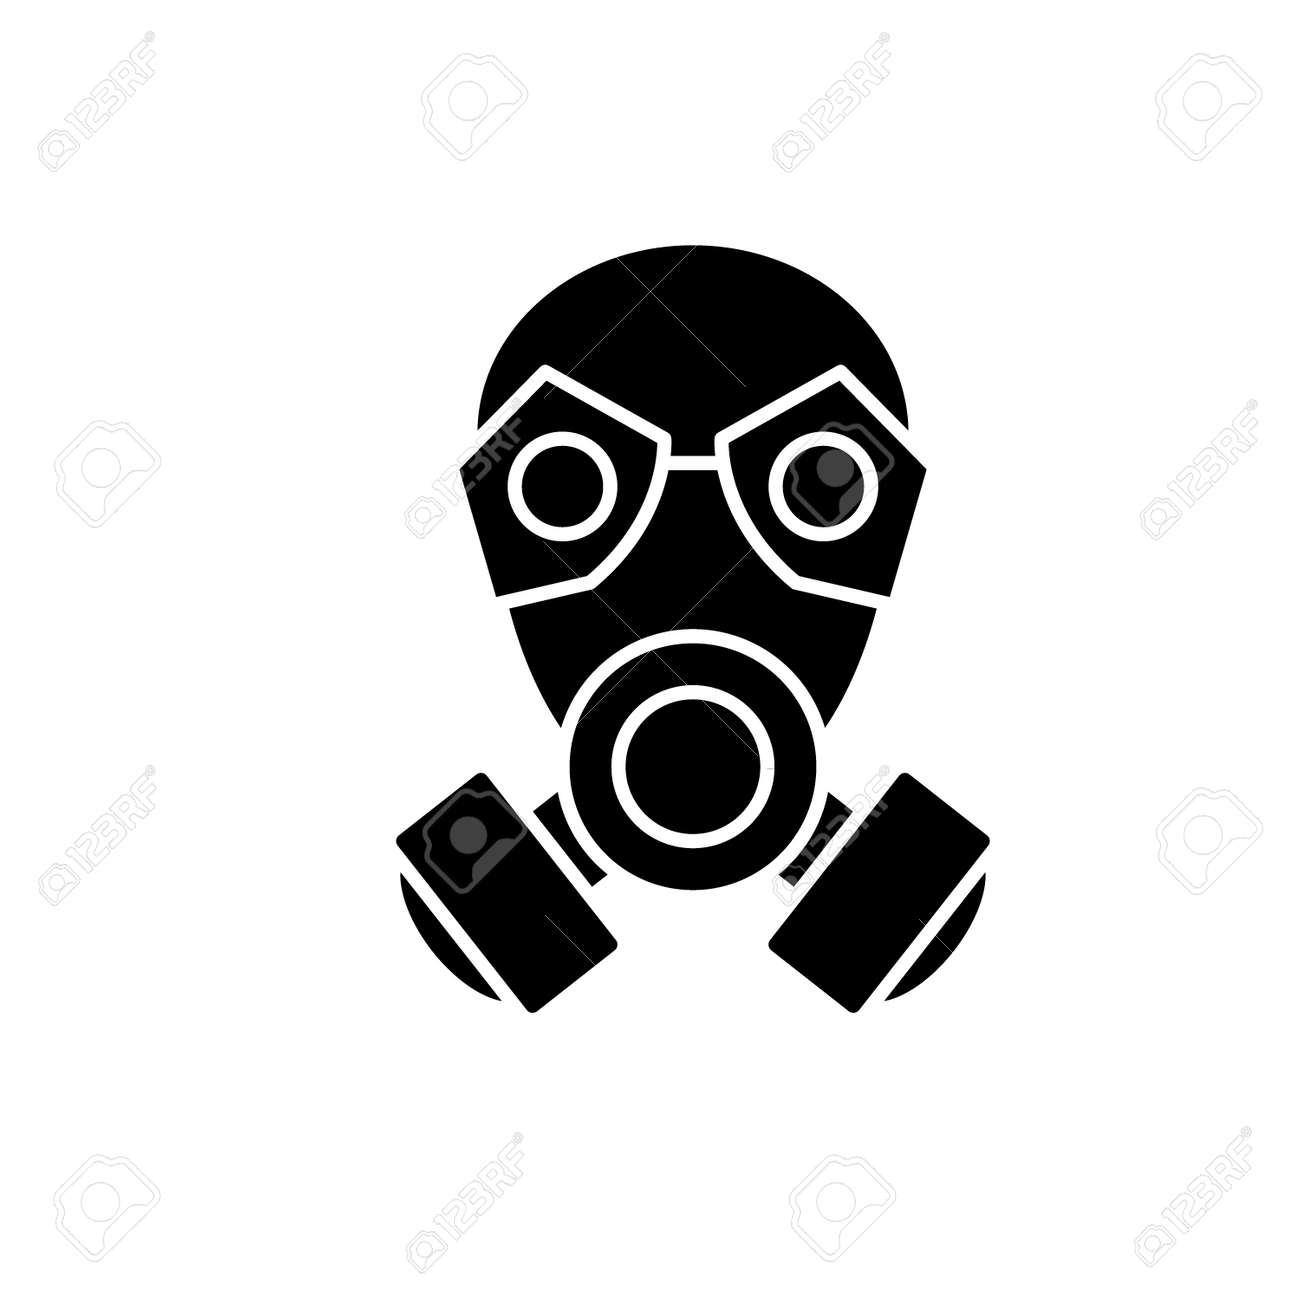 Mask black icon, concept vector sign on isolated background. Mask illustration, symbol - 113531592